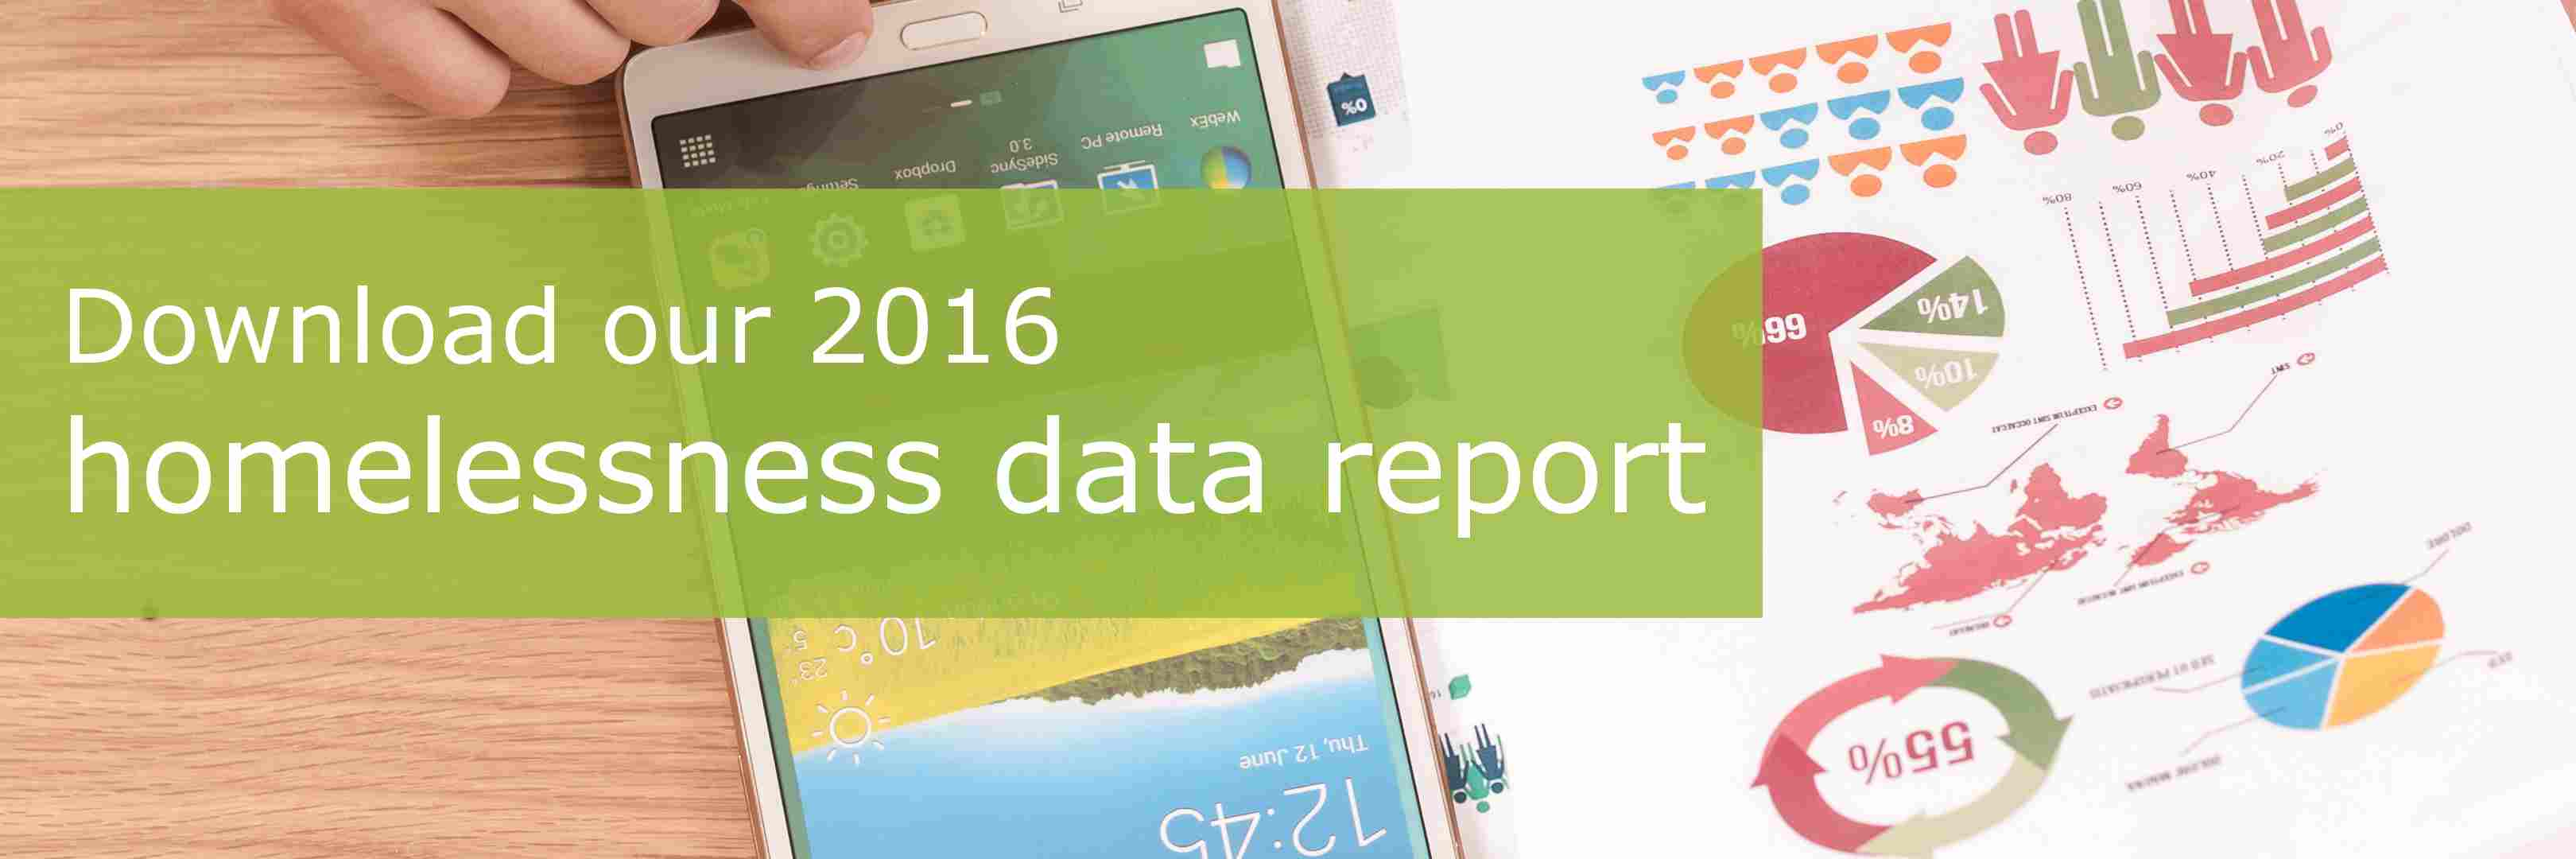 Click to download our 2016 homelessness data report.